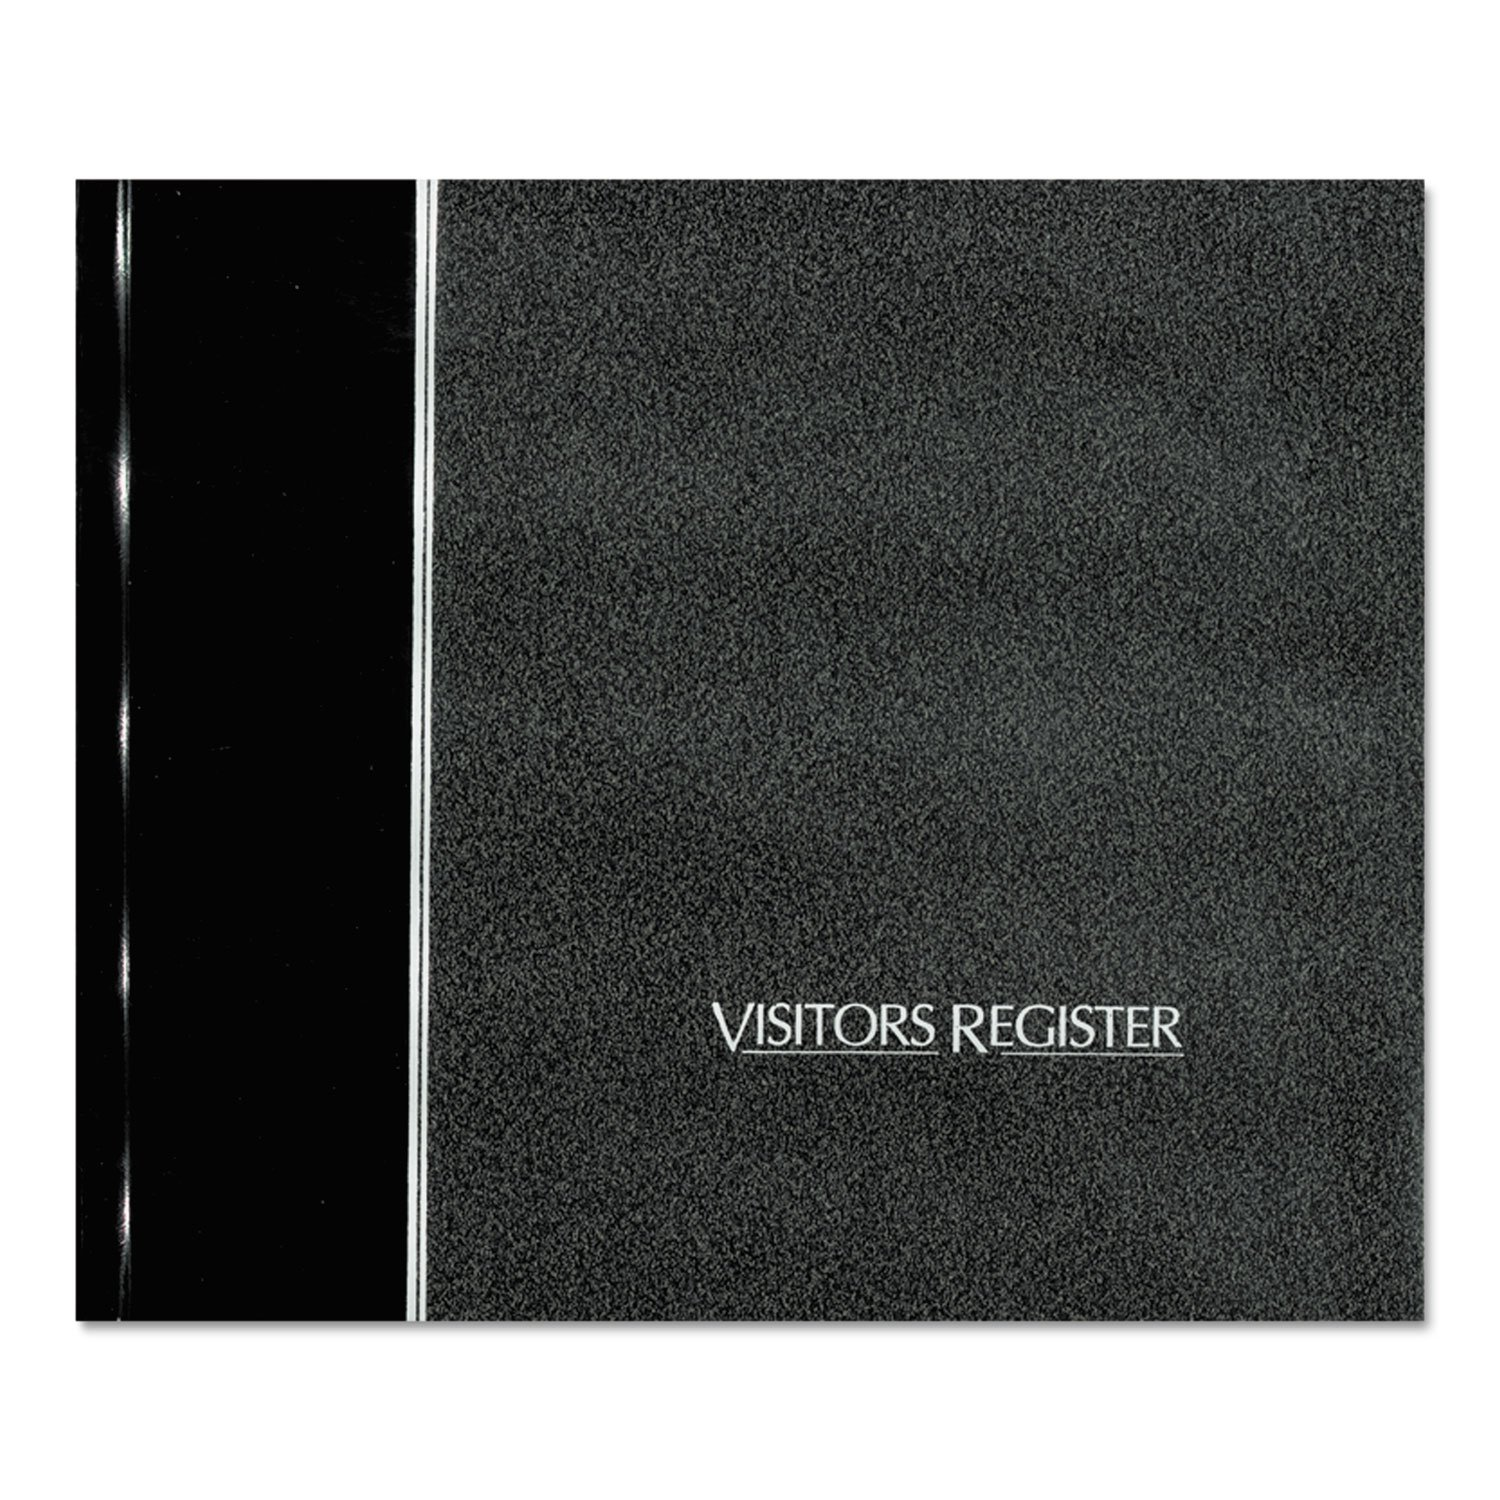 National® Brand Visitor Register Book, Black Hardcover, 128 Pages, 8 1/2 x 9 7/8